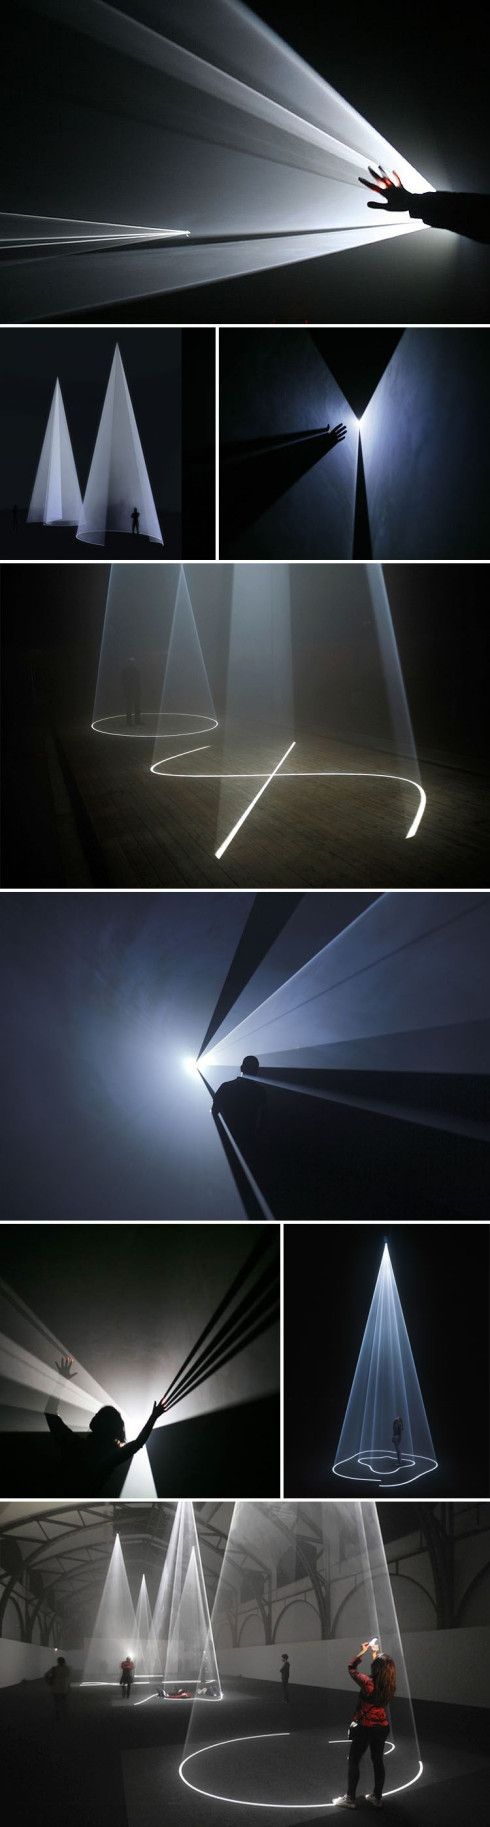 Light sculptures, Berlin light exhibit installation, Anthony McCall, Hamburger Bahnof